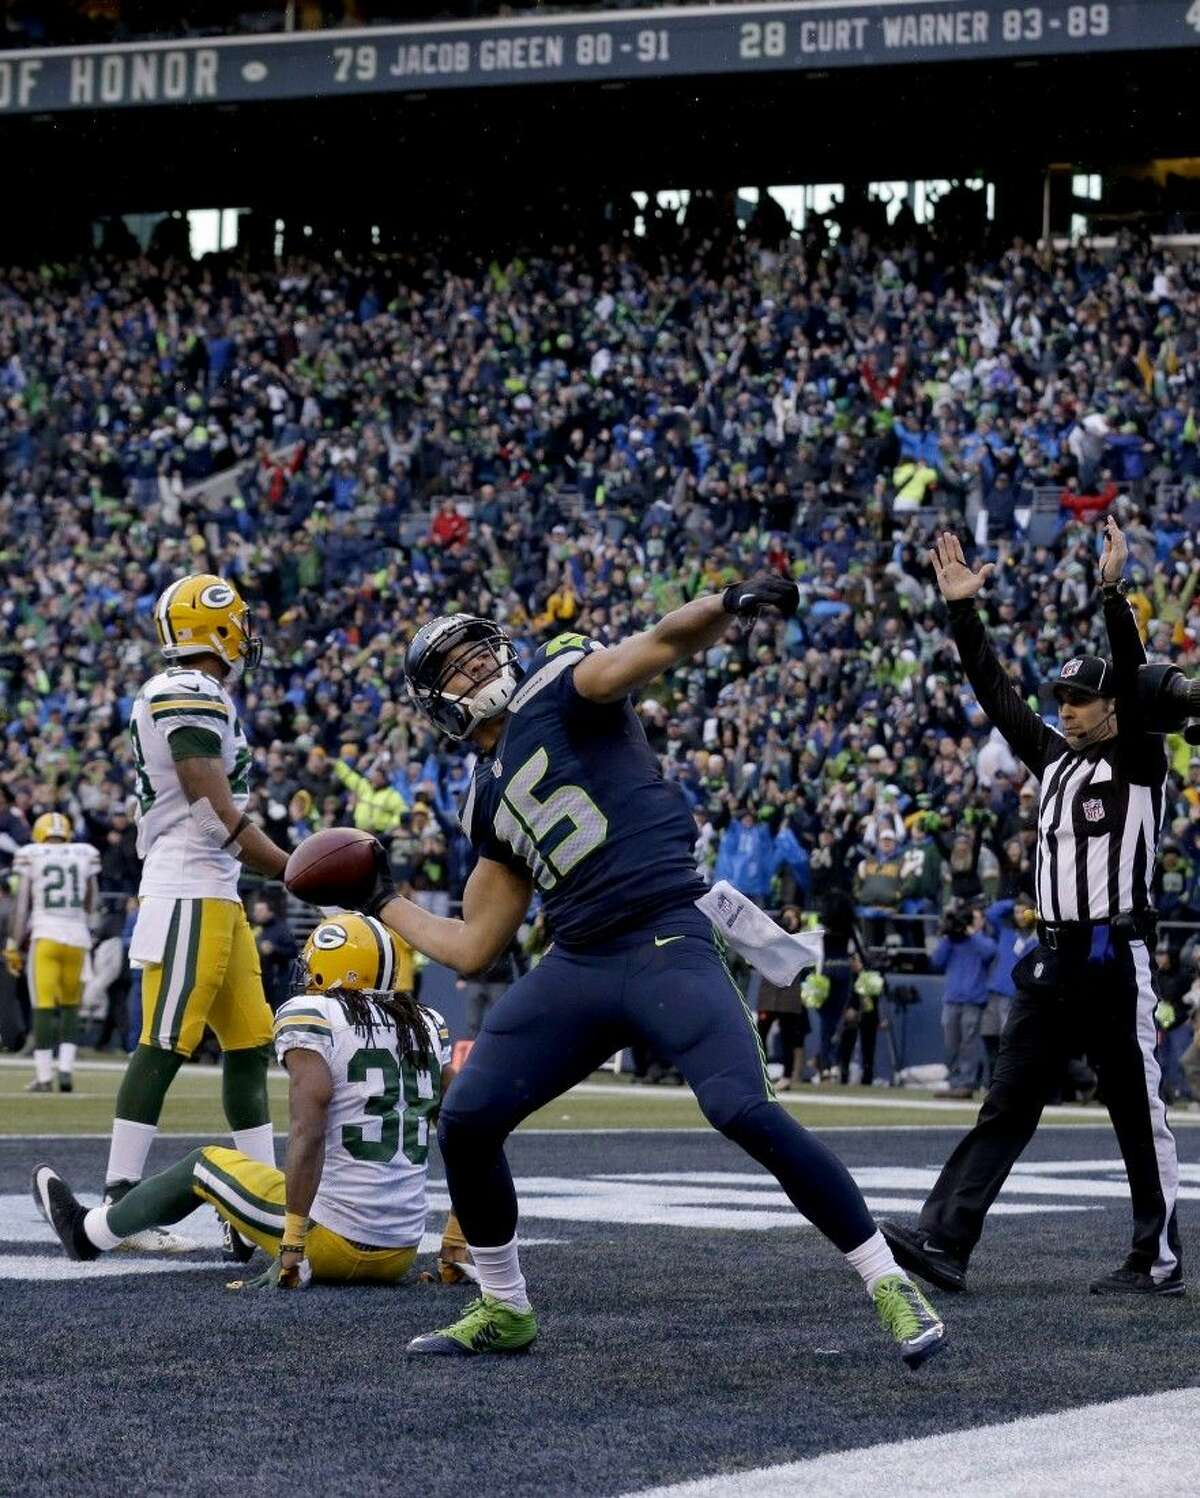 Seattle Seahawks wide receiver Jermaine Kearse throws the ball into the stands after scoring the game-winning touchdown against the Packers in overtime.